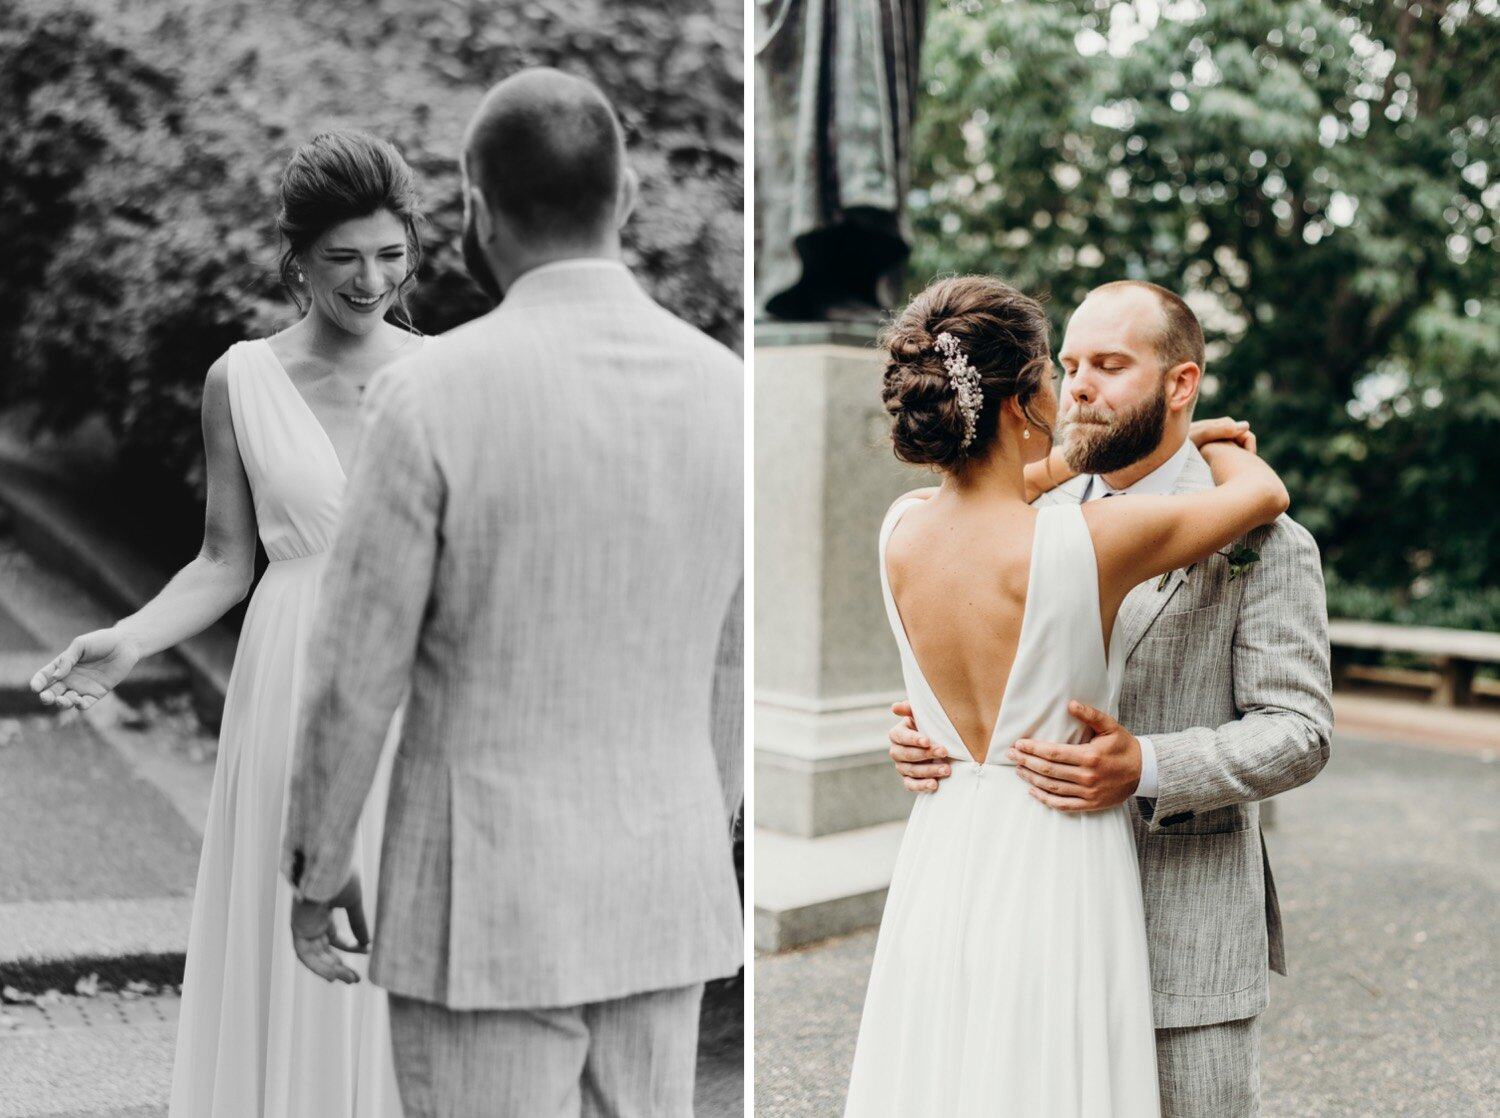 17_photographer_hill_look_meridian_park_dc_washington_first_wedding.jpg